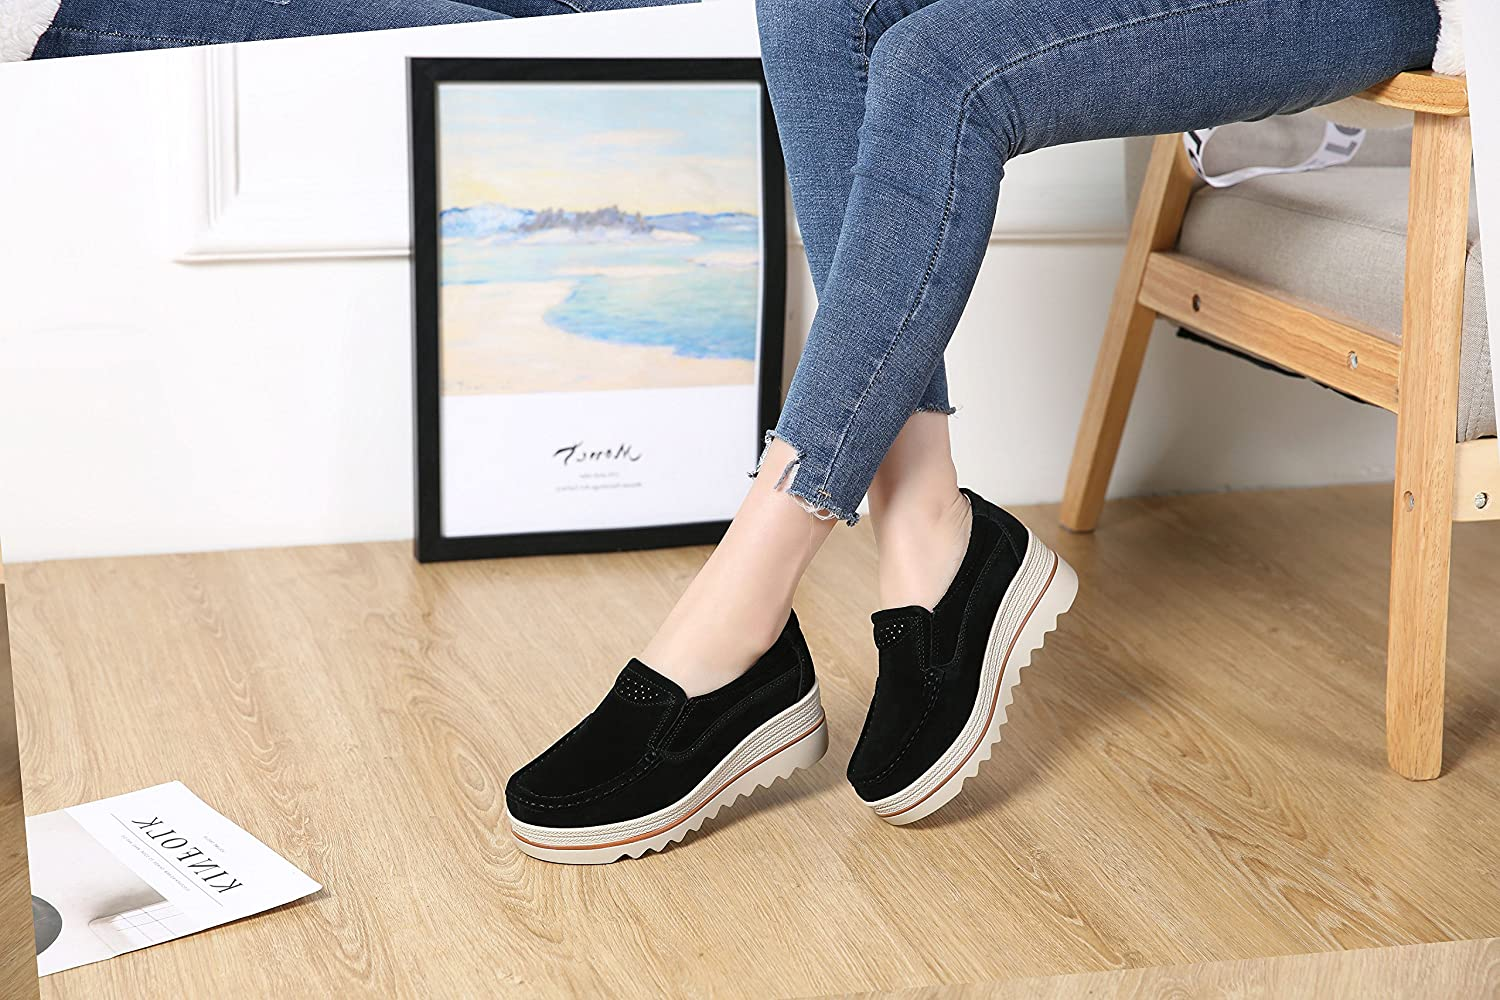 Dhiuow Platform Shoes Women Slip on Loafers Suede Wedge Shoes Comfortable Sneakers for Ladies B07BXMCQSQ 7.5 B(M) US|Black#1